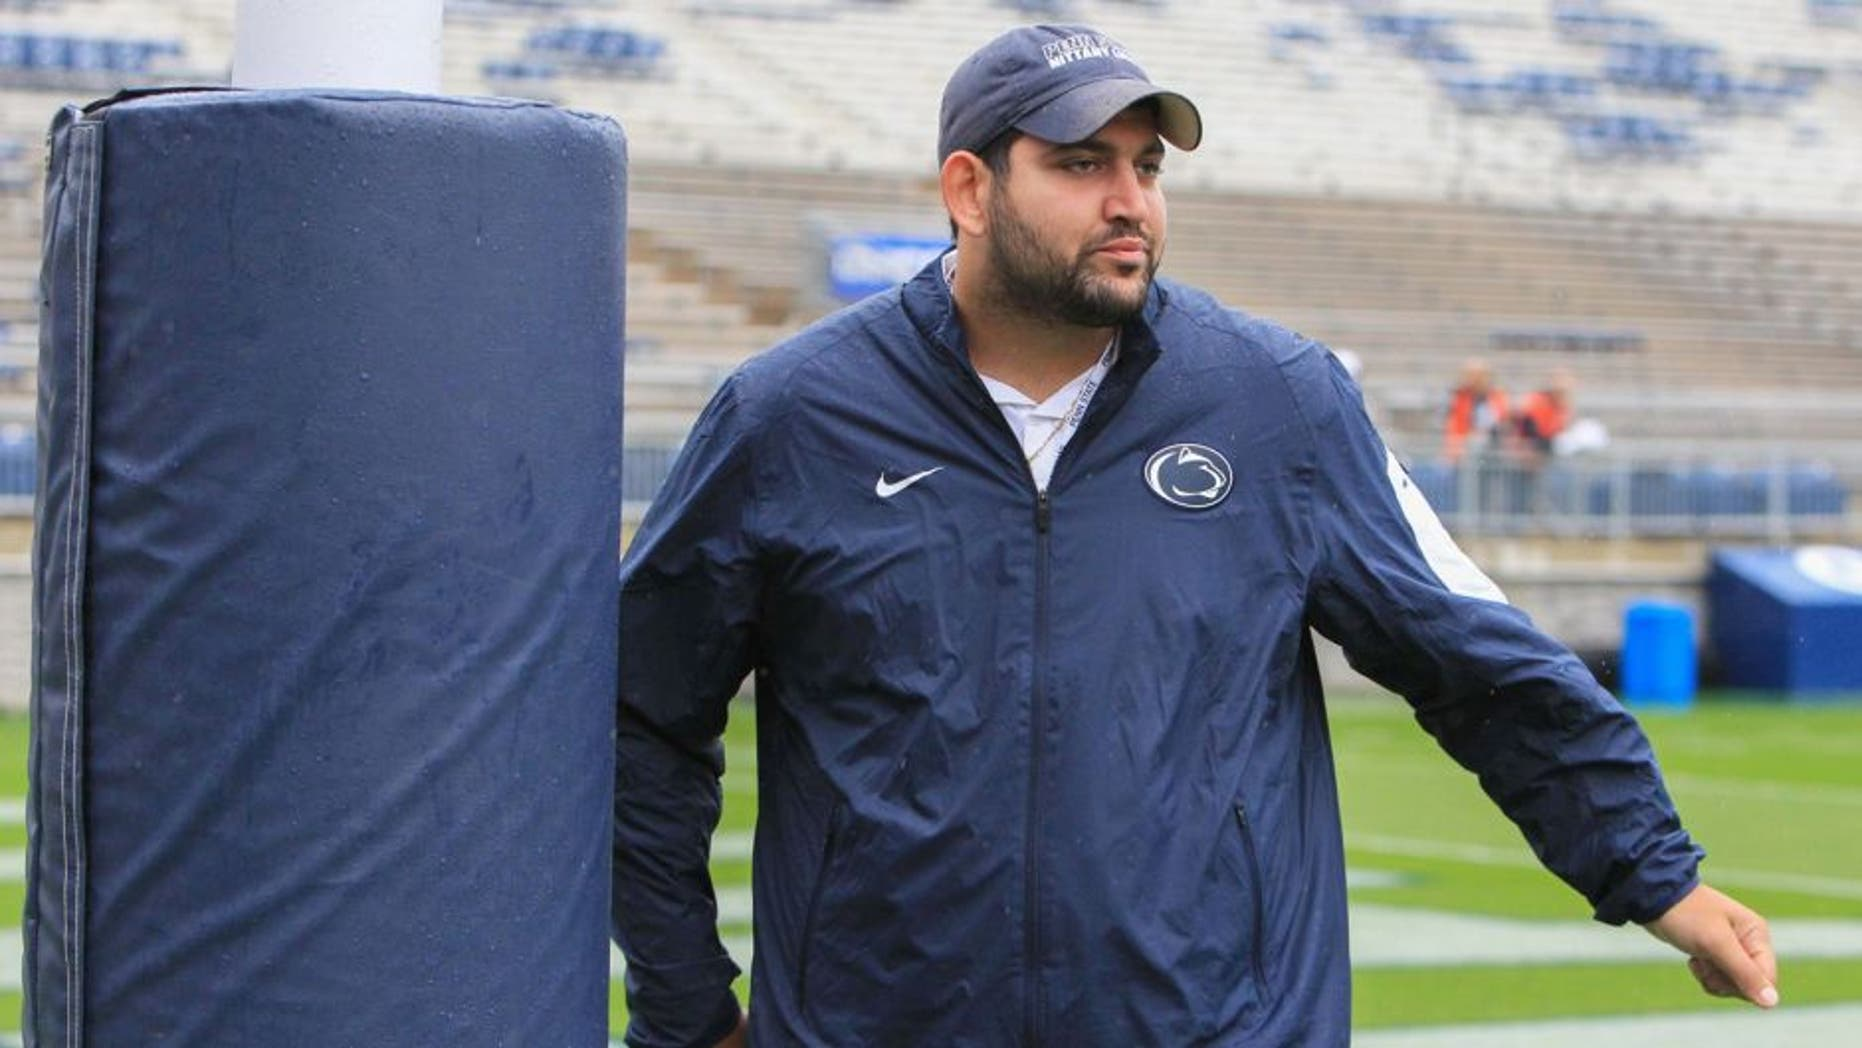 Sep 12, 2015; University Park, PA, USA; Penn State Nittany Lions center Angelo Mangiro (66) walks on the field prior to the game against the Buffalo Bulls at Beaver Stadium. Mandatory Credit: Matthew O'Haren-USA TODAY Sports